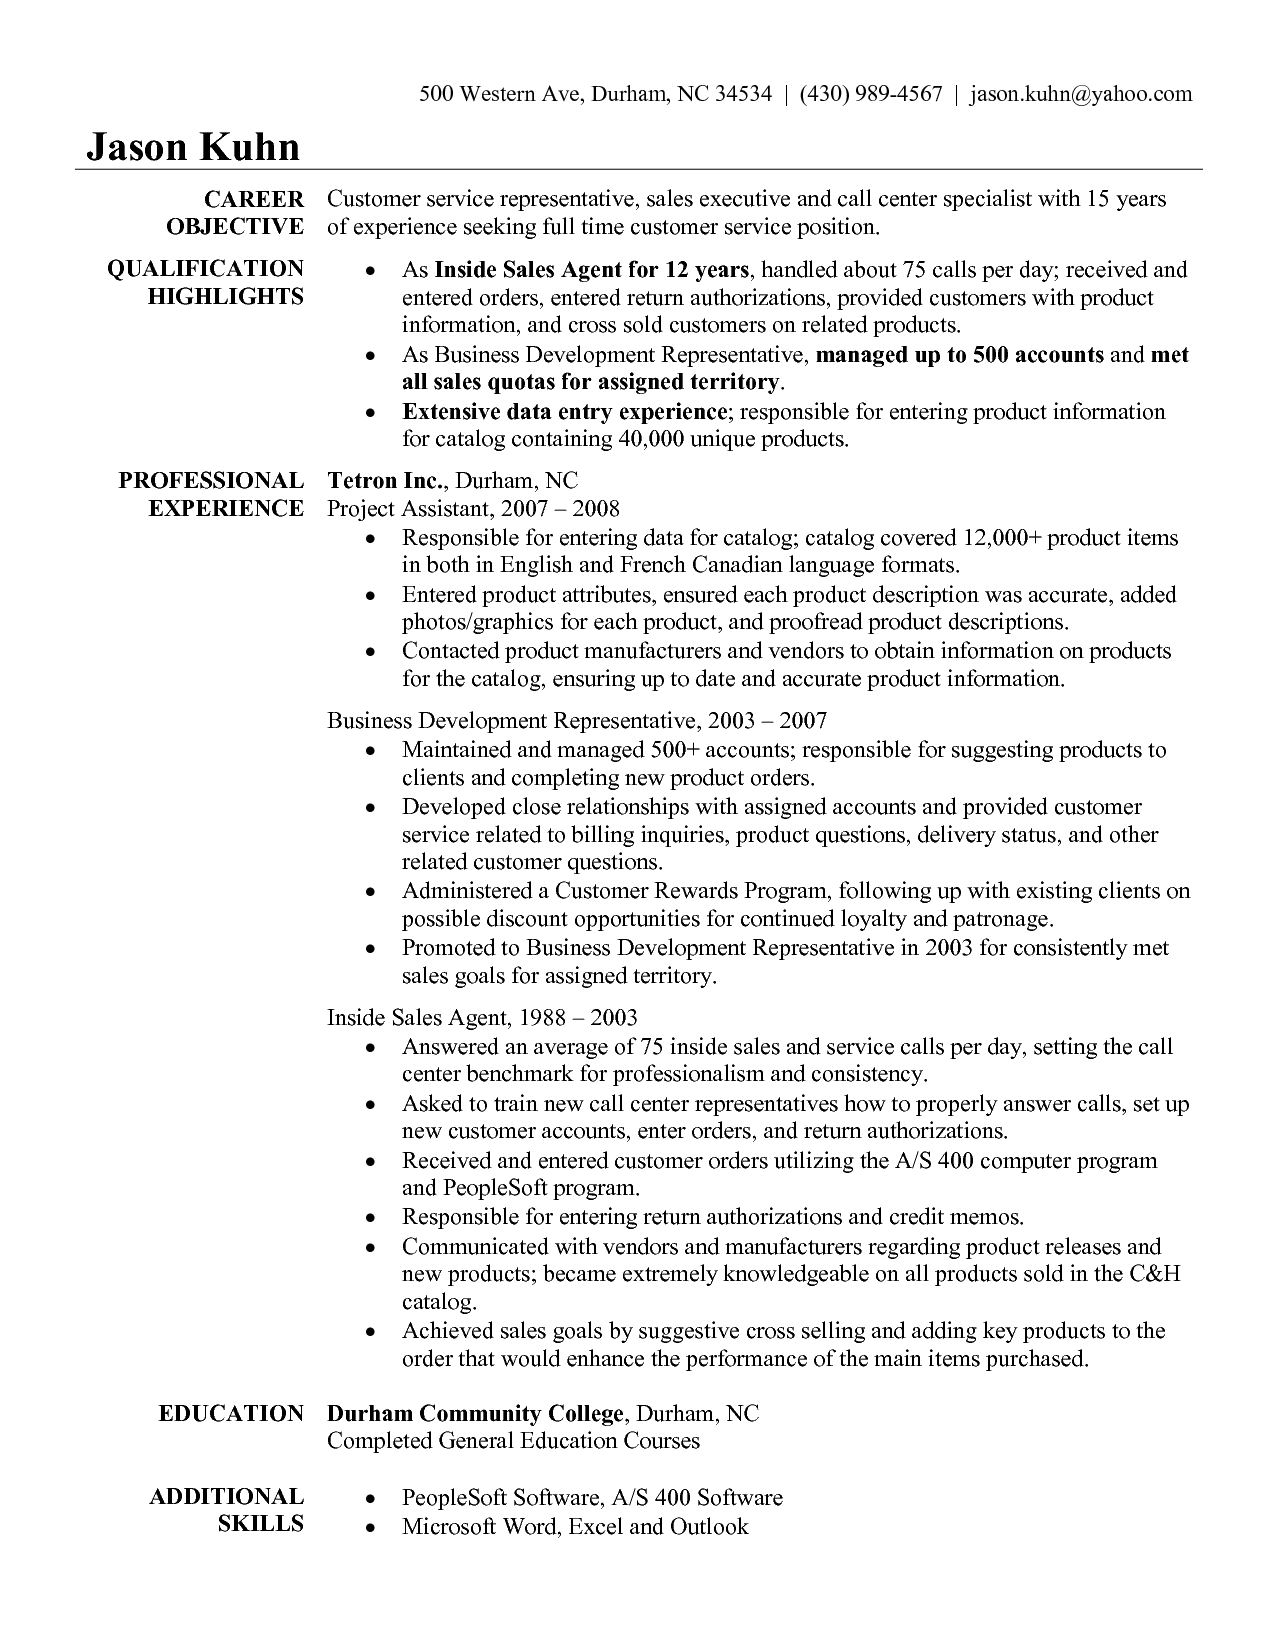 resume Insurance Experience Resume insurance claims representative resume sample httpwww resumecareer info